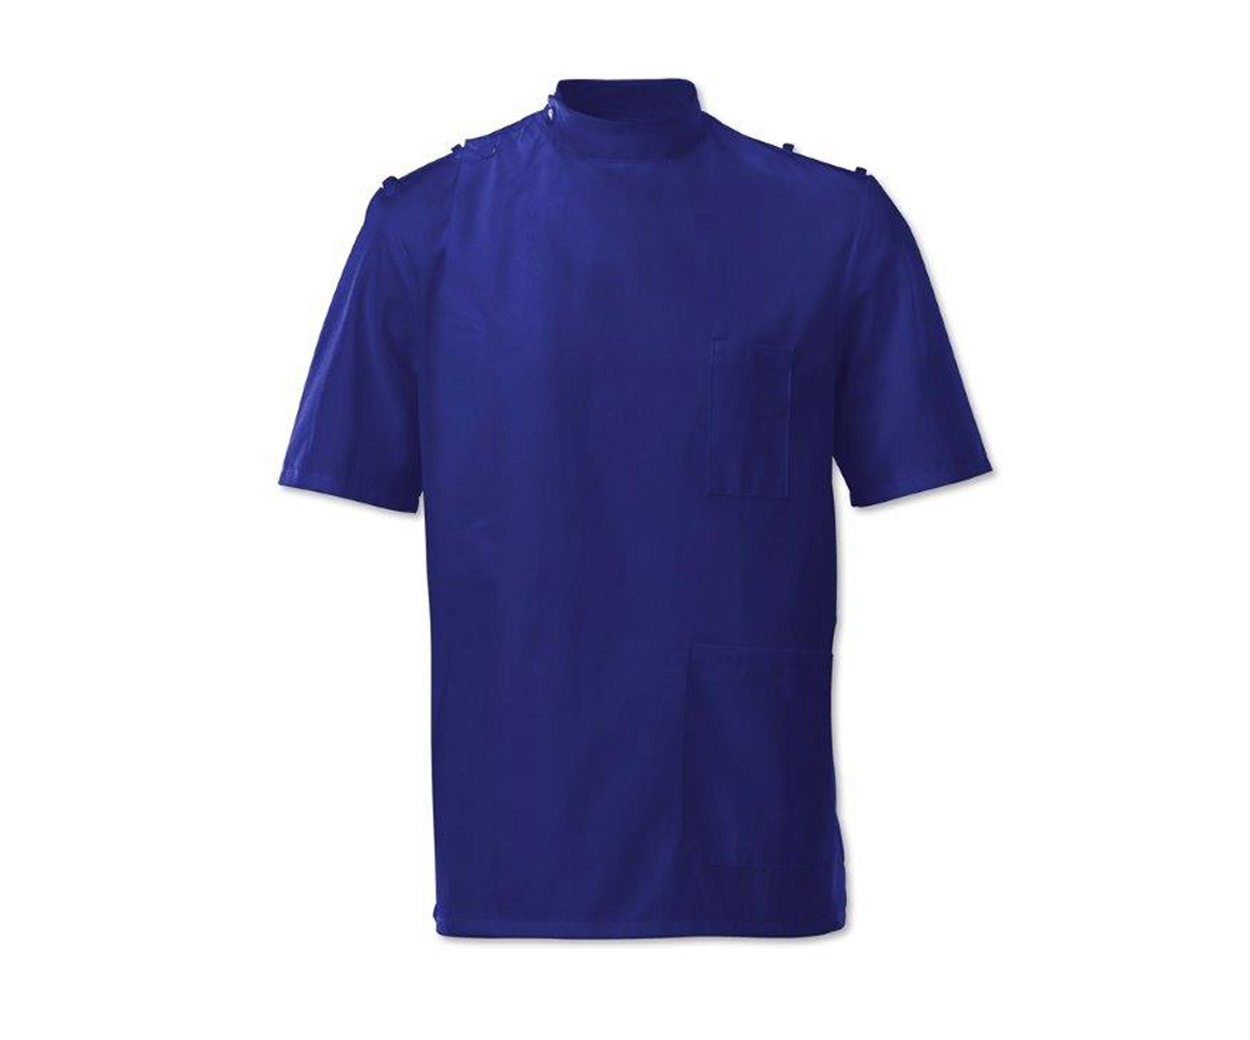 Mens mandarin collar healthcare tunic